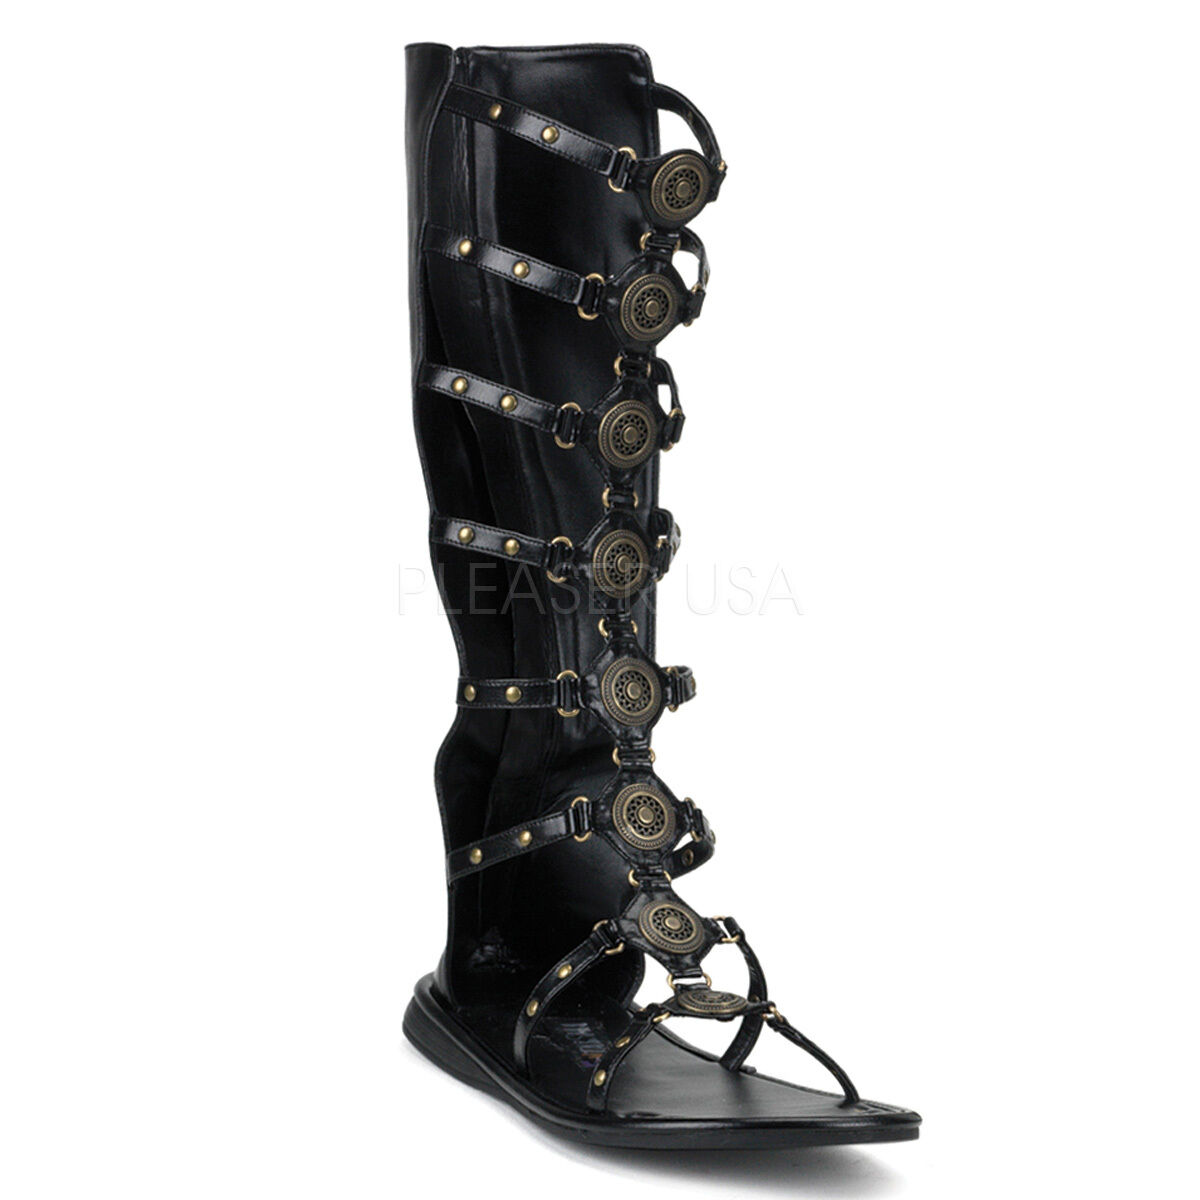 Black Roman Soldier Hercules Gladiator Lace Up Sandals Boots Costume shoes Mens